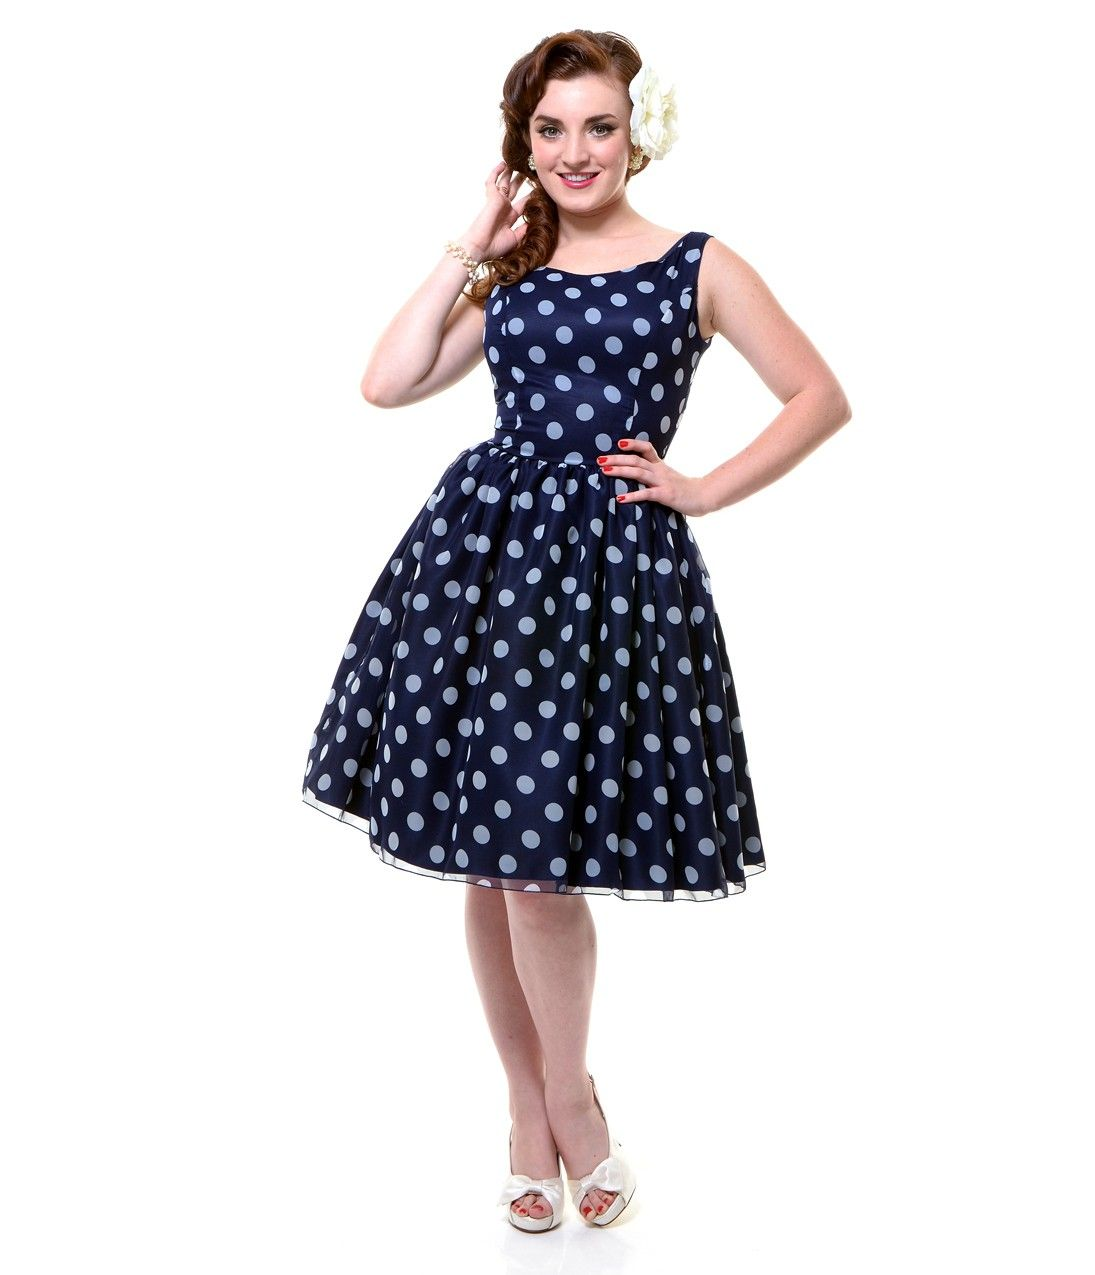 Polka dot dress styles